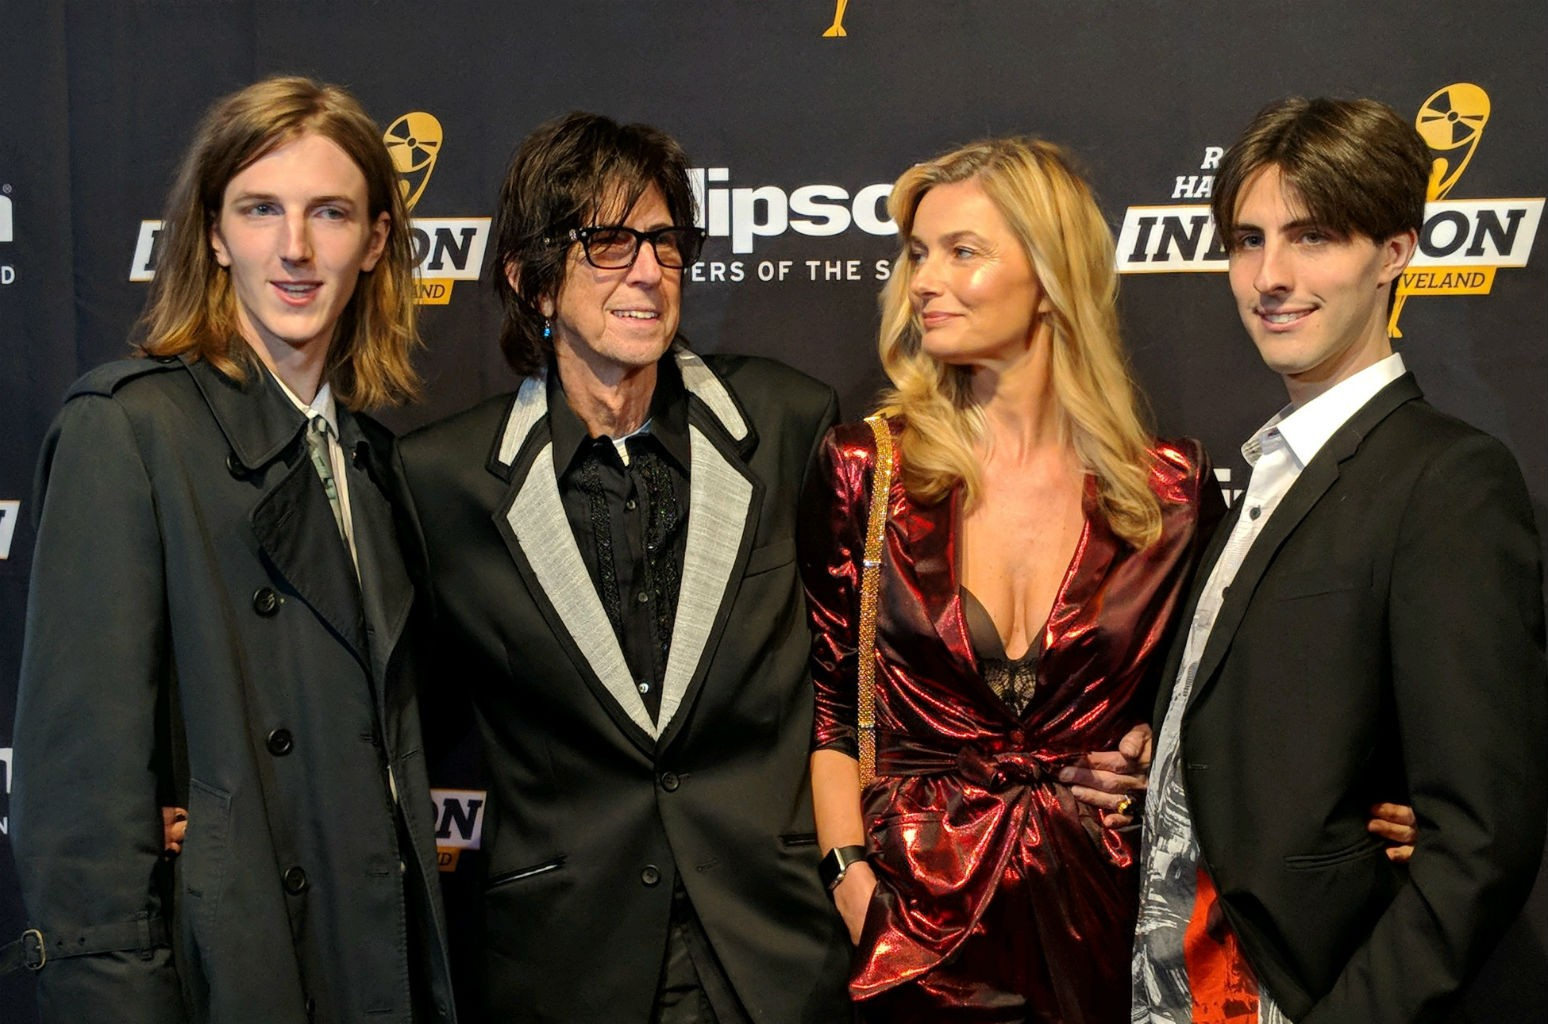 Ric Ocasek and family celebrate before the 2018 Rock and Roll Hall of Fame induction ceremony in Cleveland, Ohio on April 13, 2016.